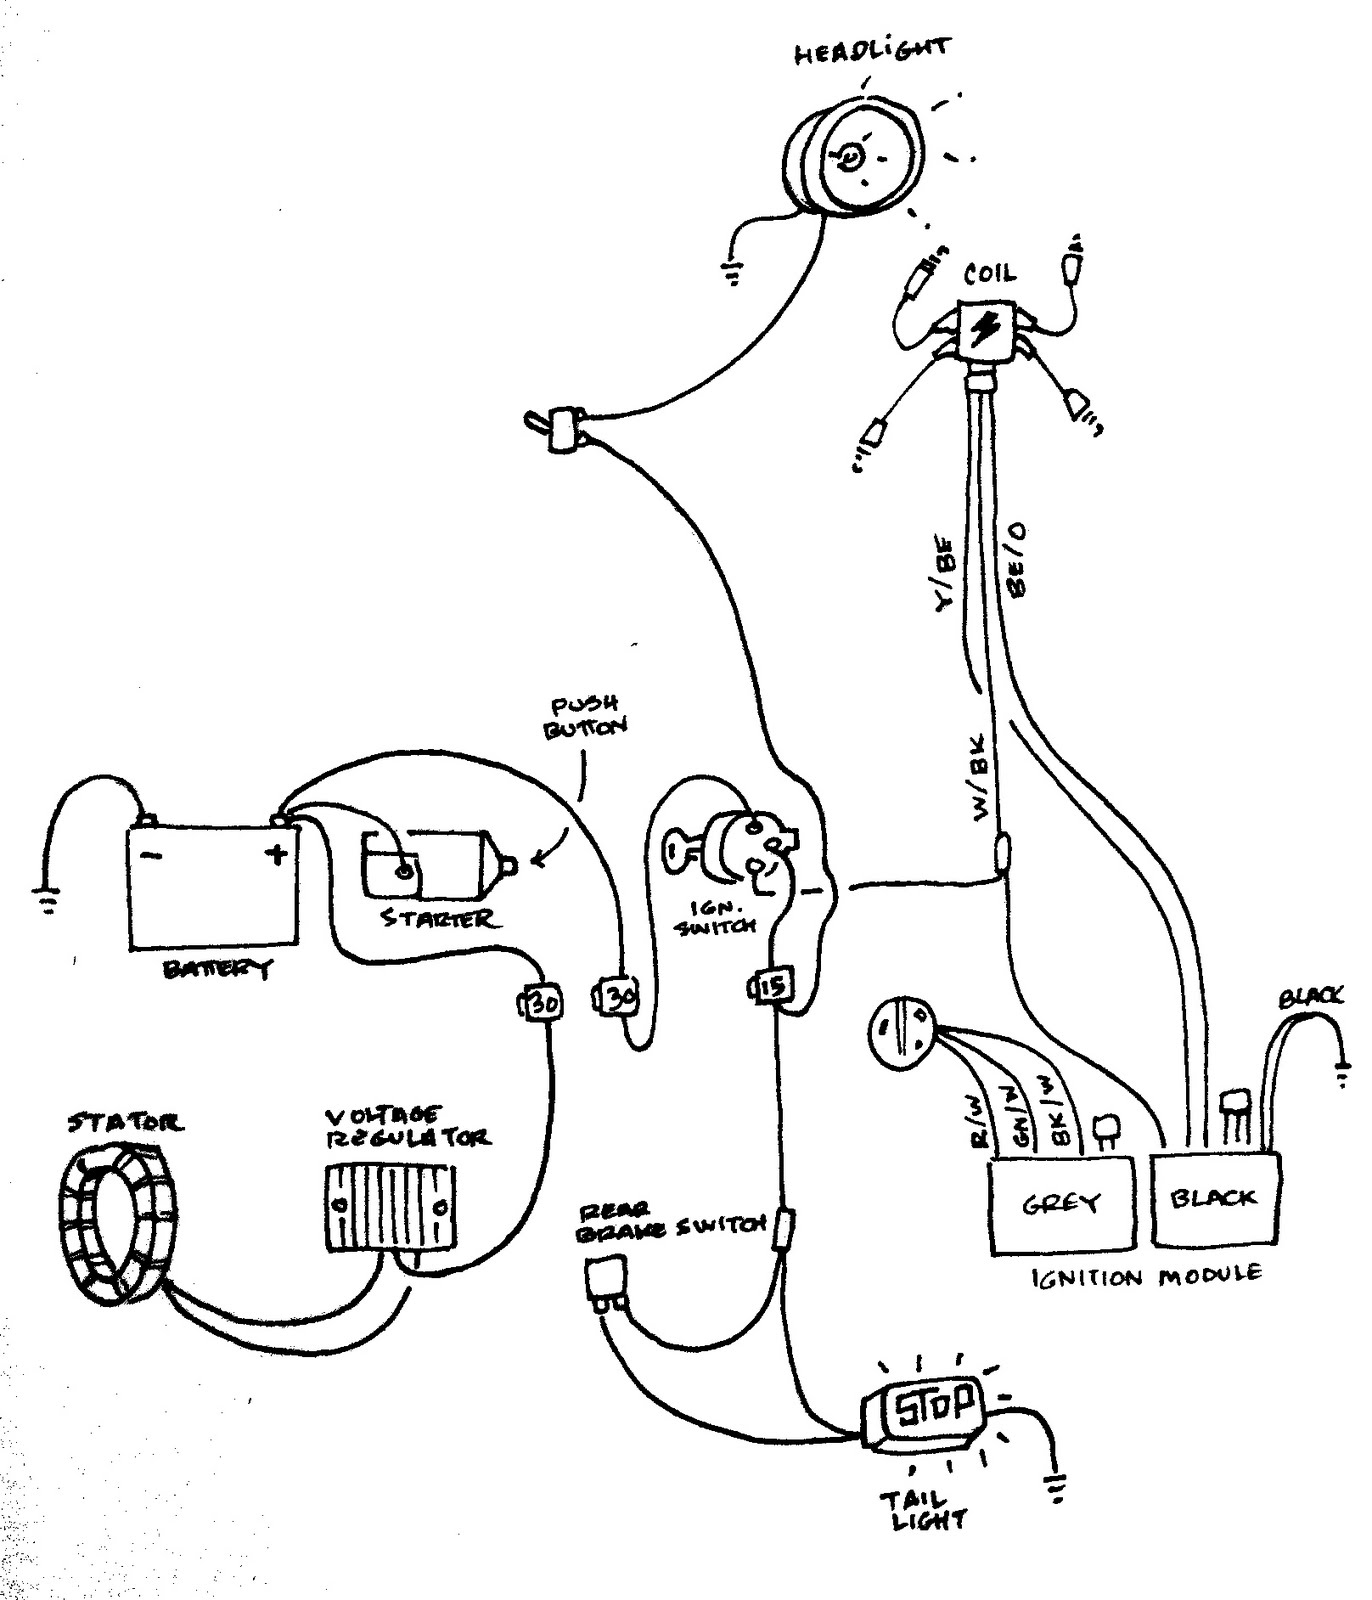 Pocket Bike Wire Diagram - General Wiring Diagrams on